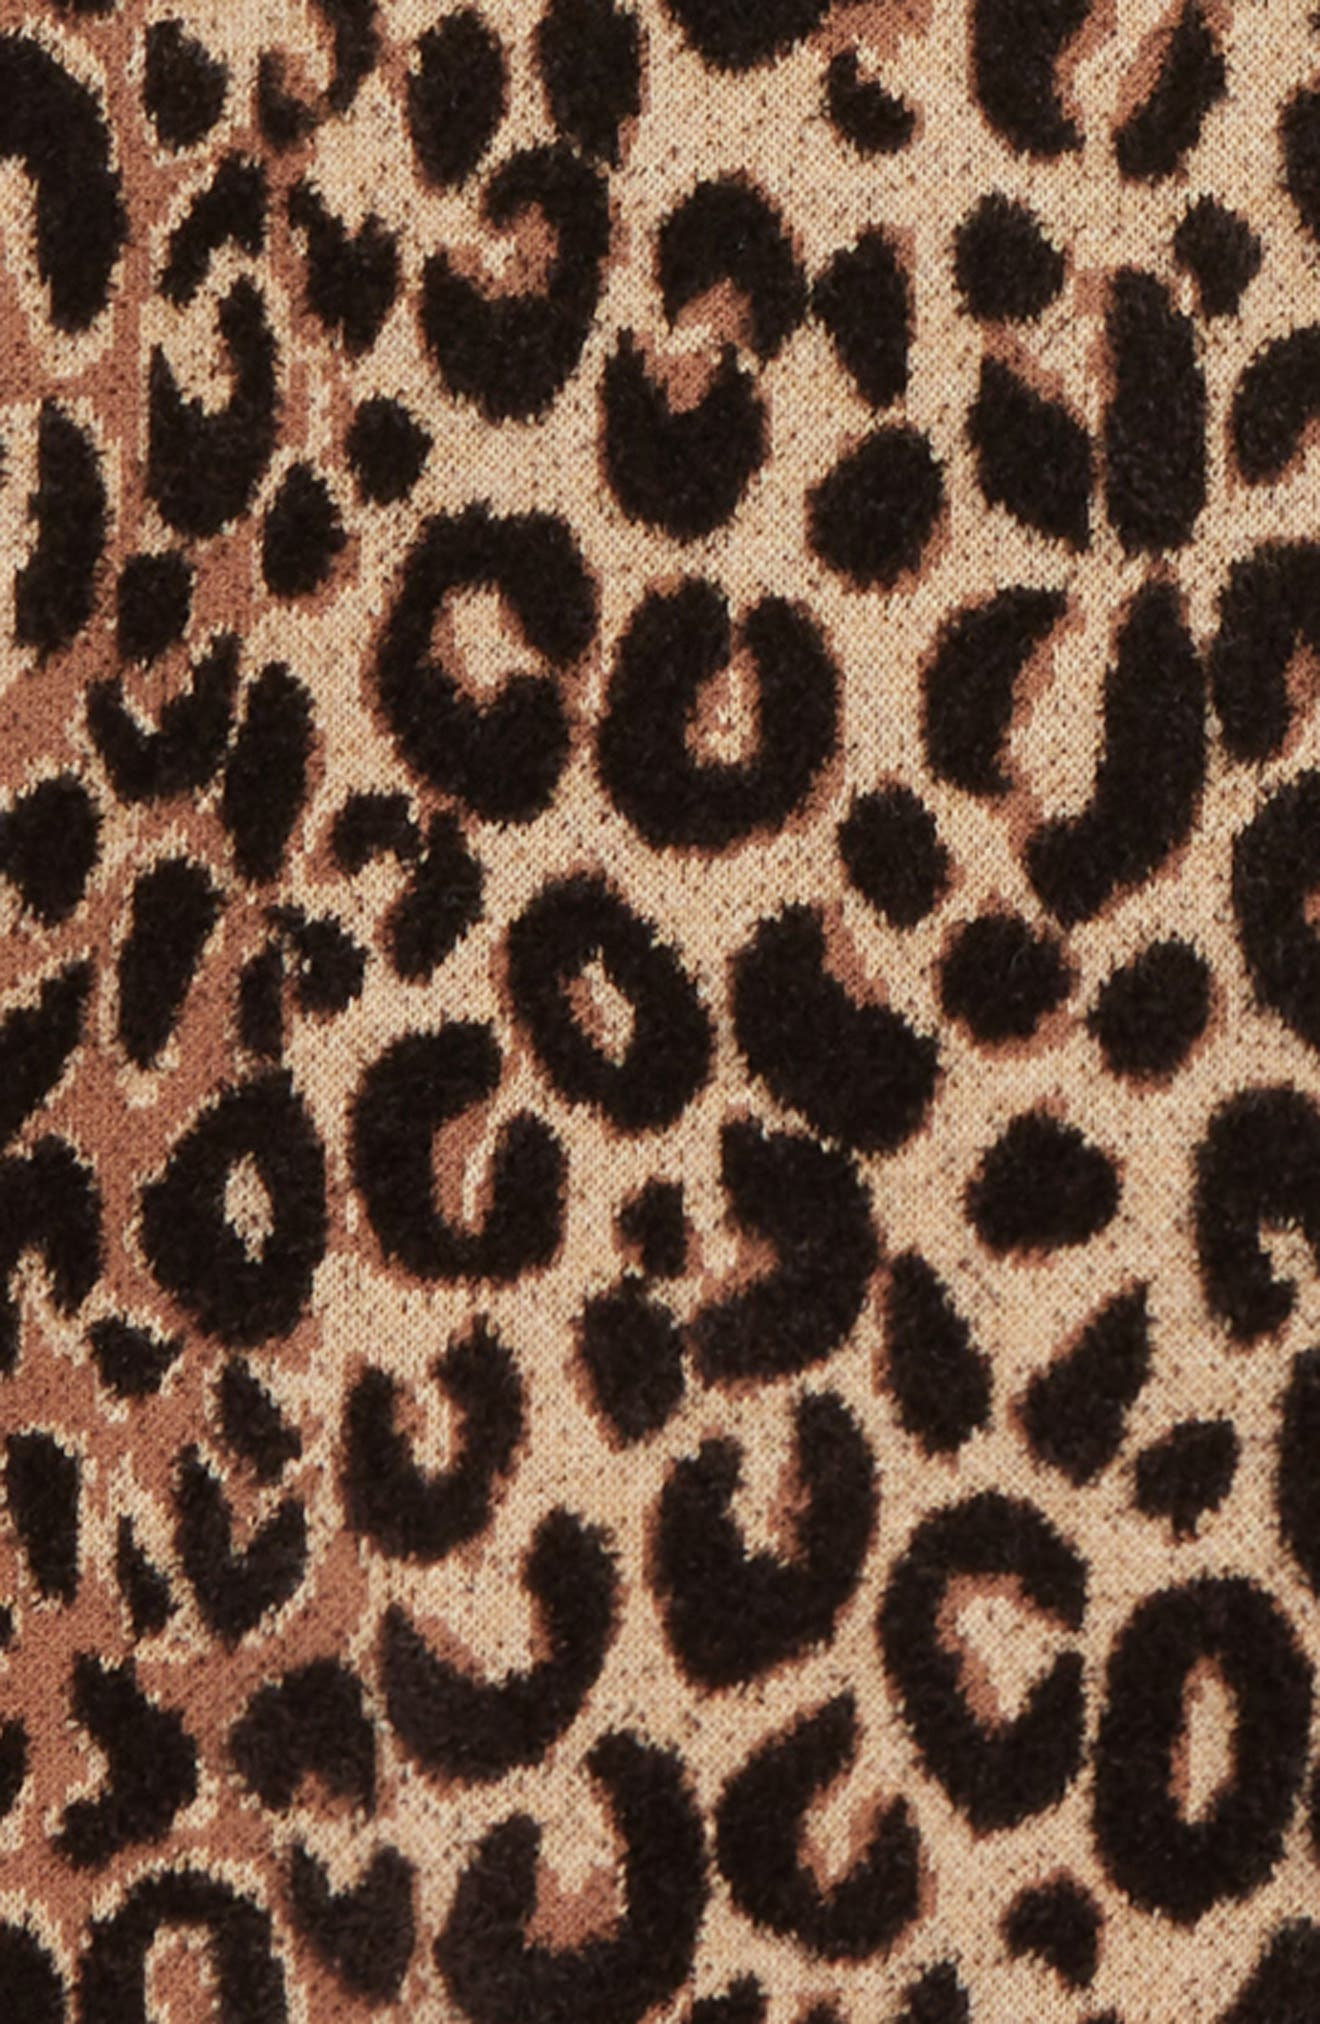 Textured Leopard Sweater,                             Alternate thumbnail 2, color,                             NATURAL MULTI